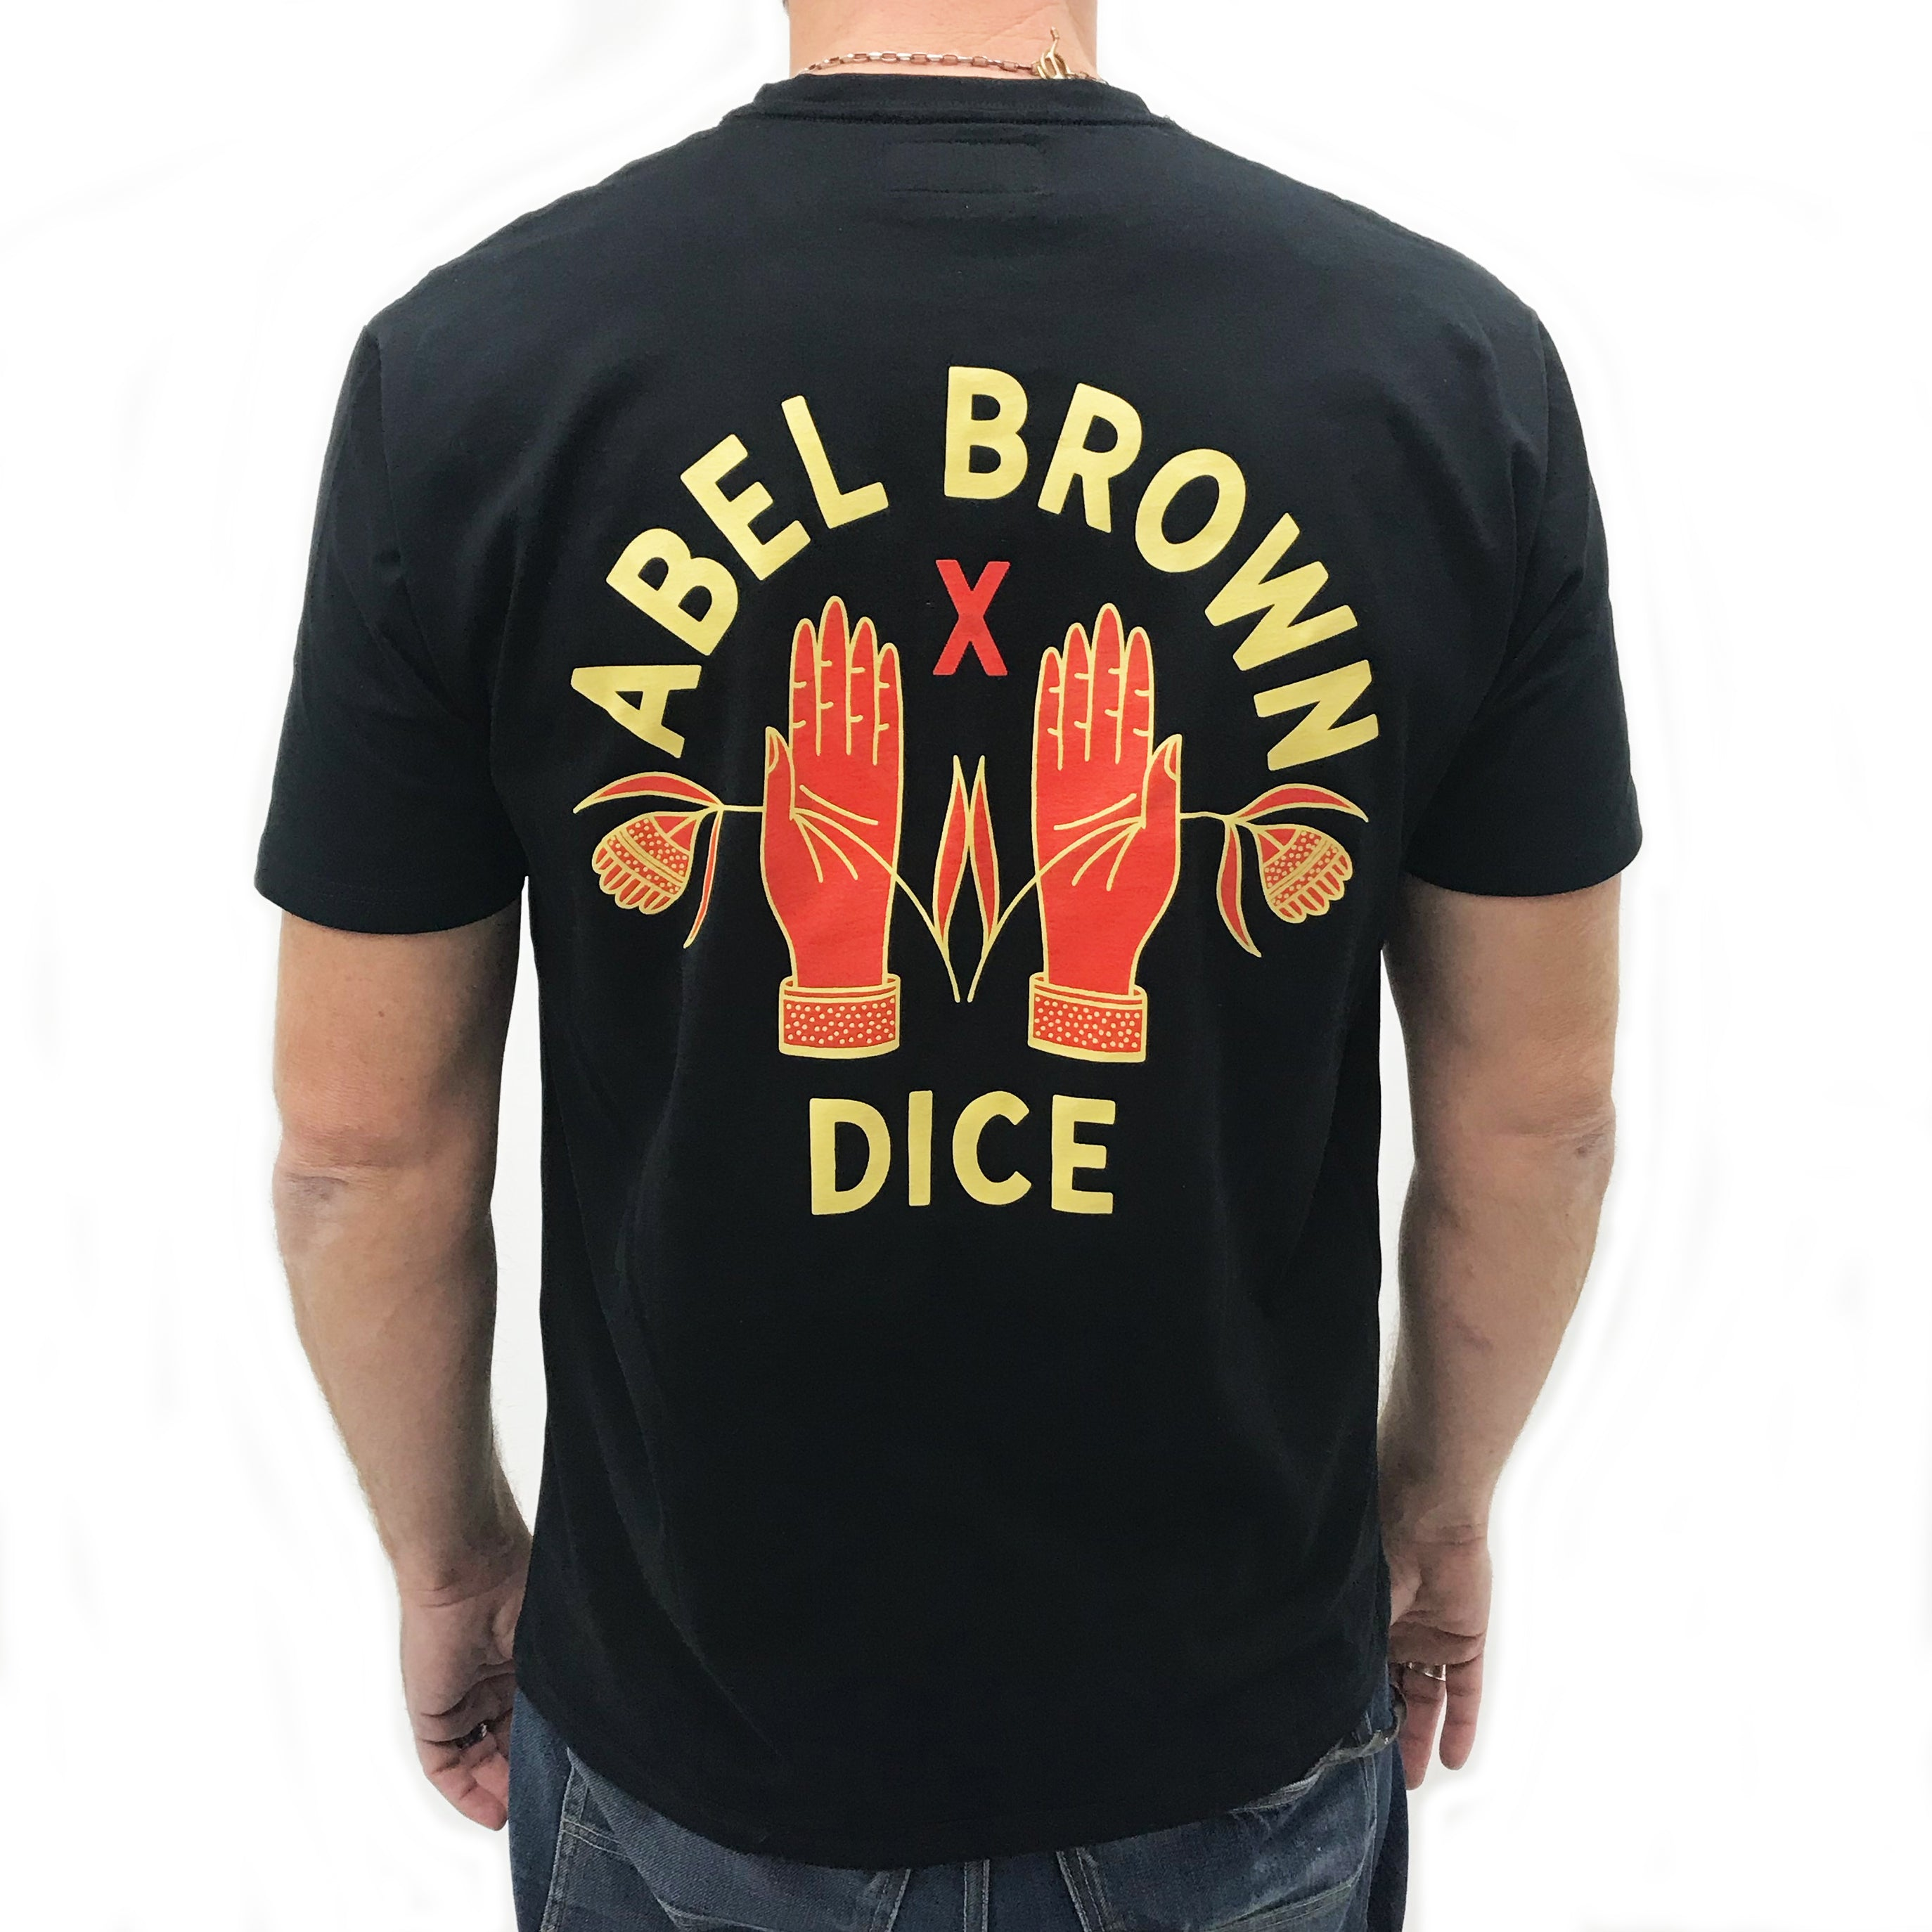 DicE x Abel Brown collab tee - Abel Brown